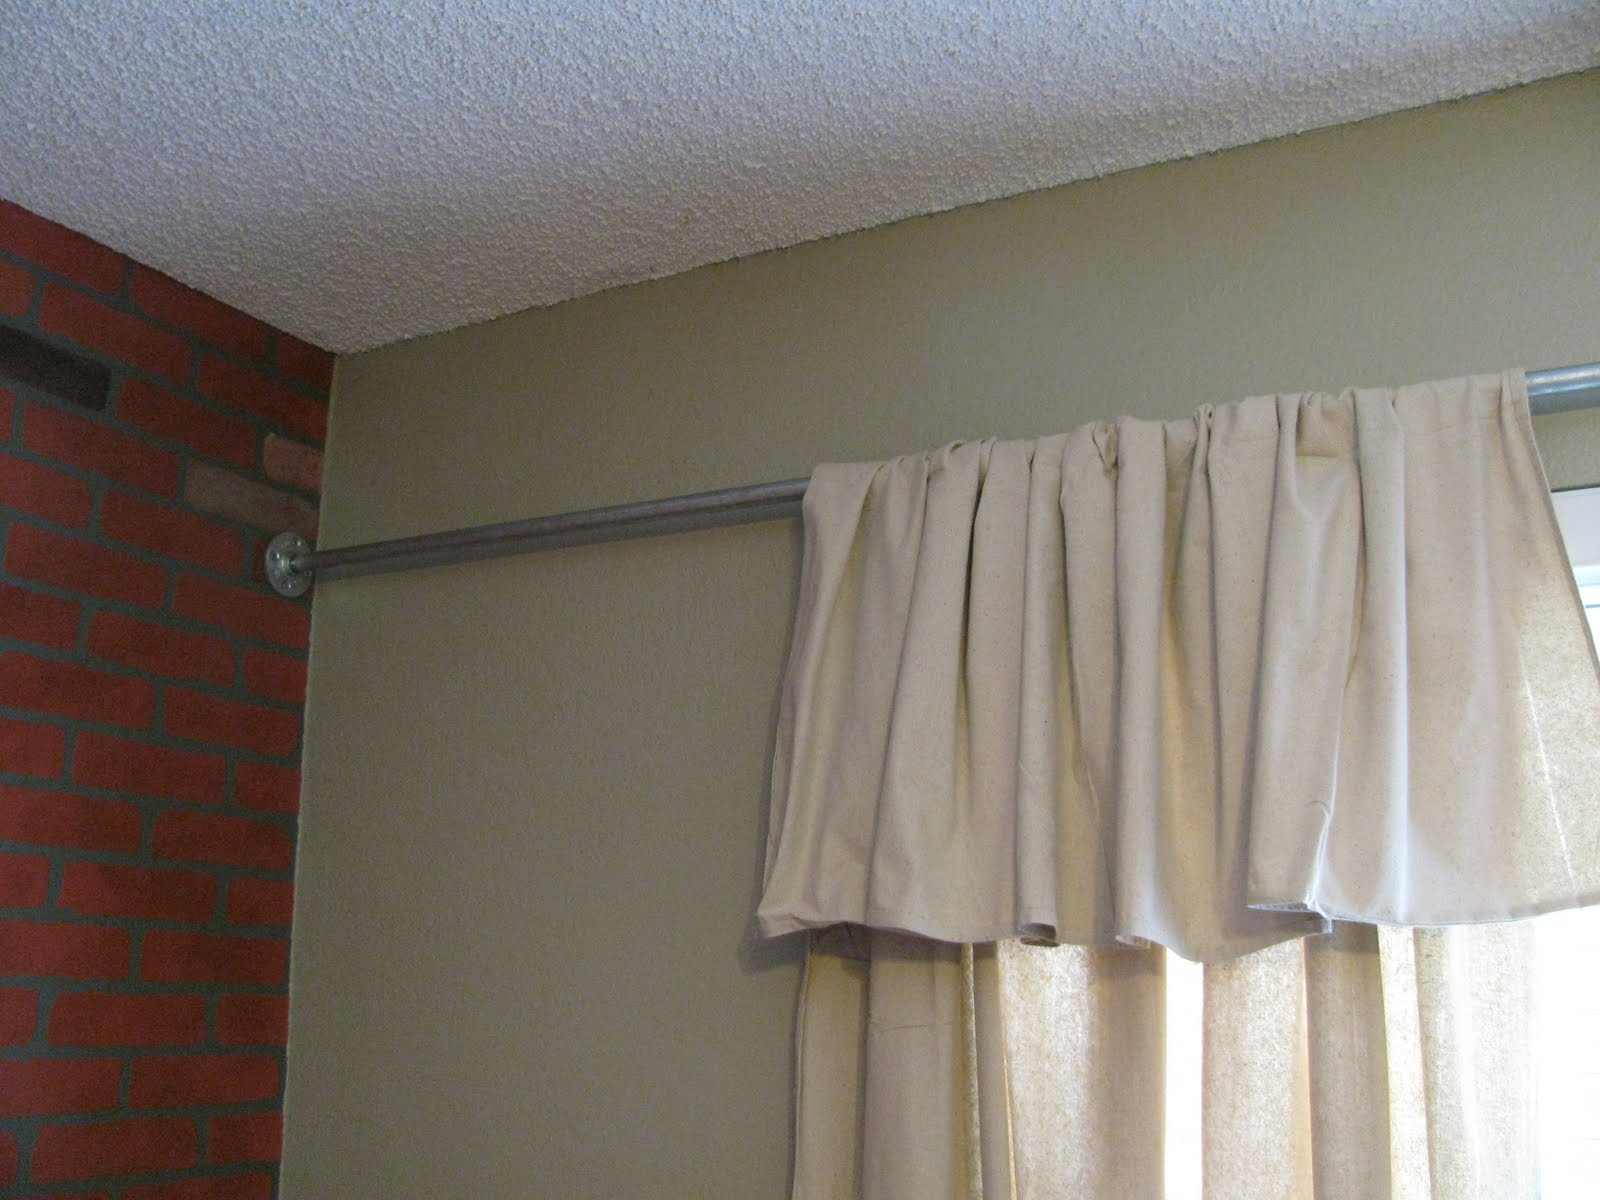 Curtain Rod Mounting Hardware Twist and Fit Curtain Rod